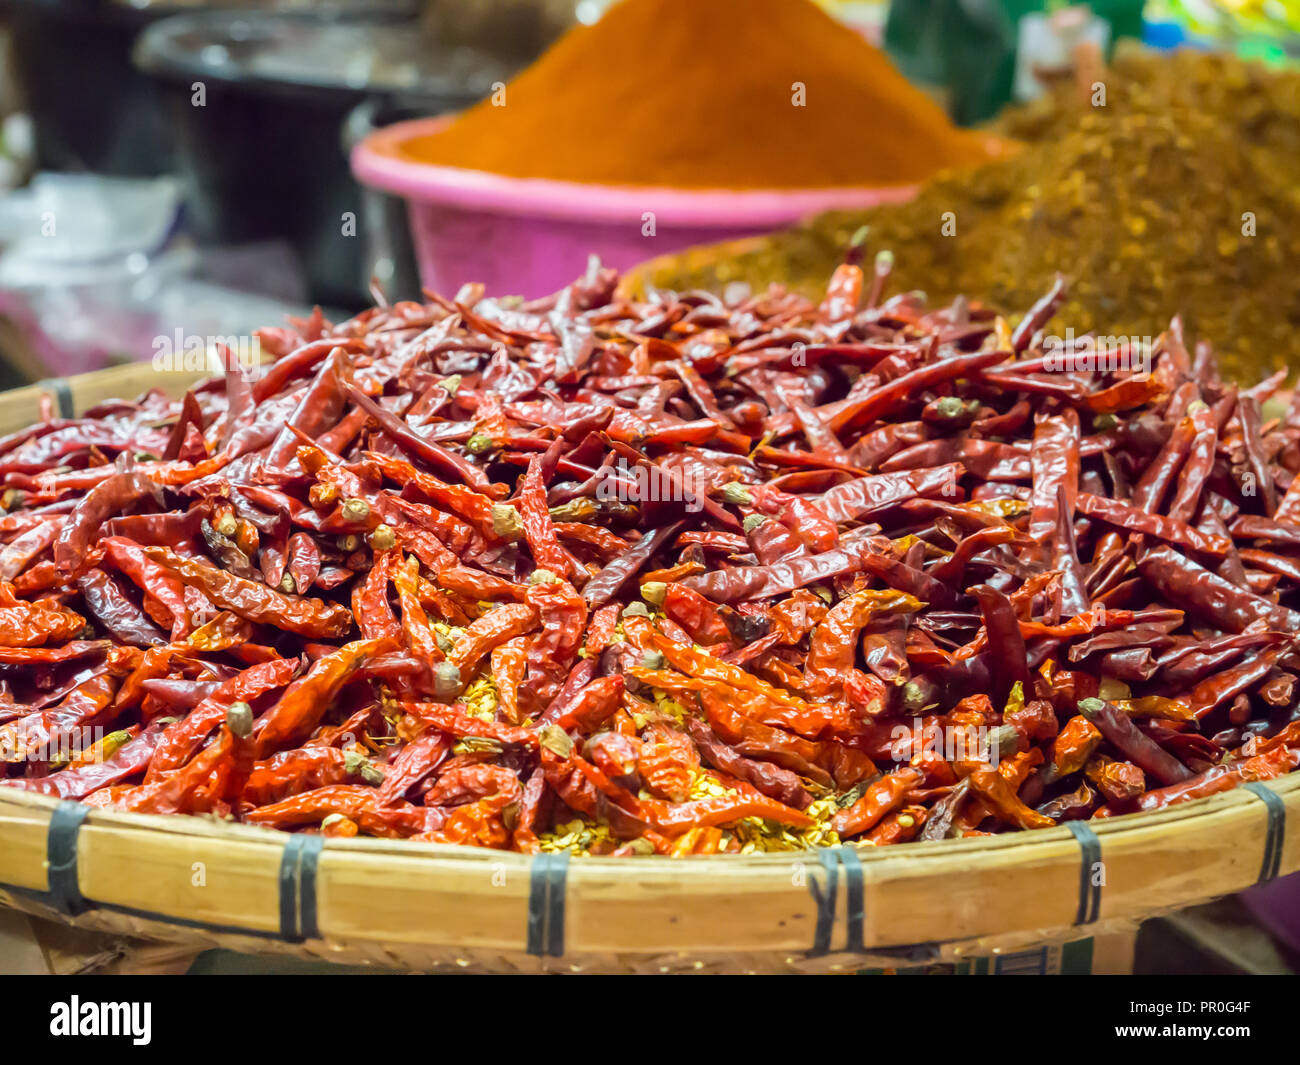 Piments, Luang Prabang, Laos, Indochine, Asie du Sud-Est, l'Asie Photo Stock